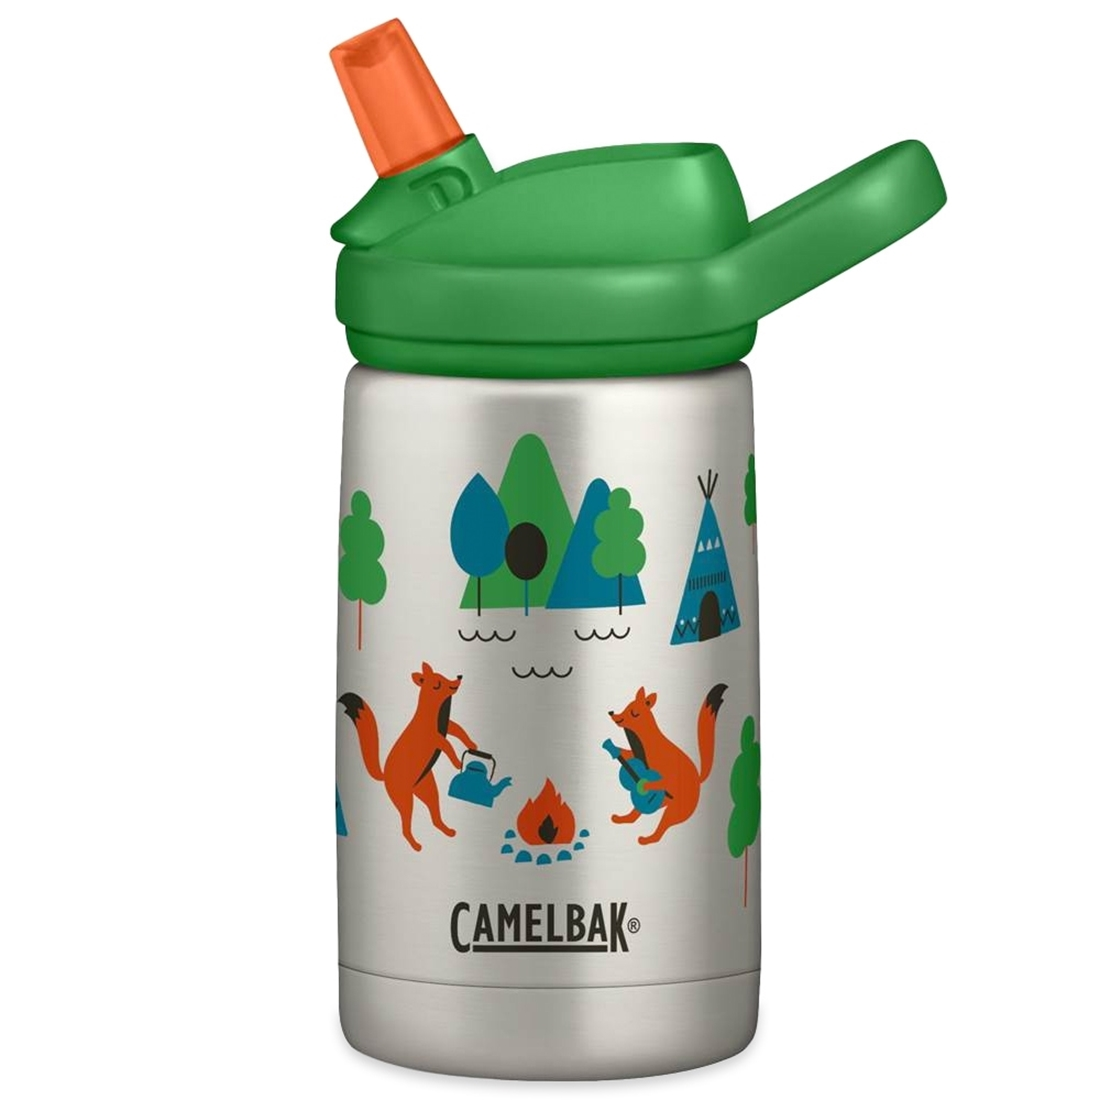 Camelbak Eddy+ Kids Insulated Stainless Steel Bottle 350ml Camping Foxes